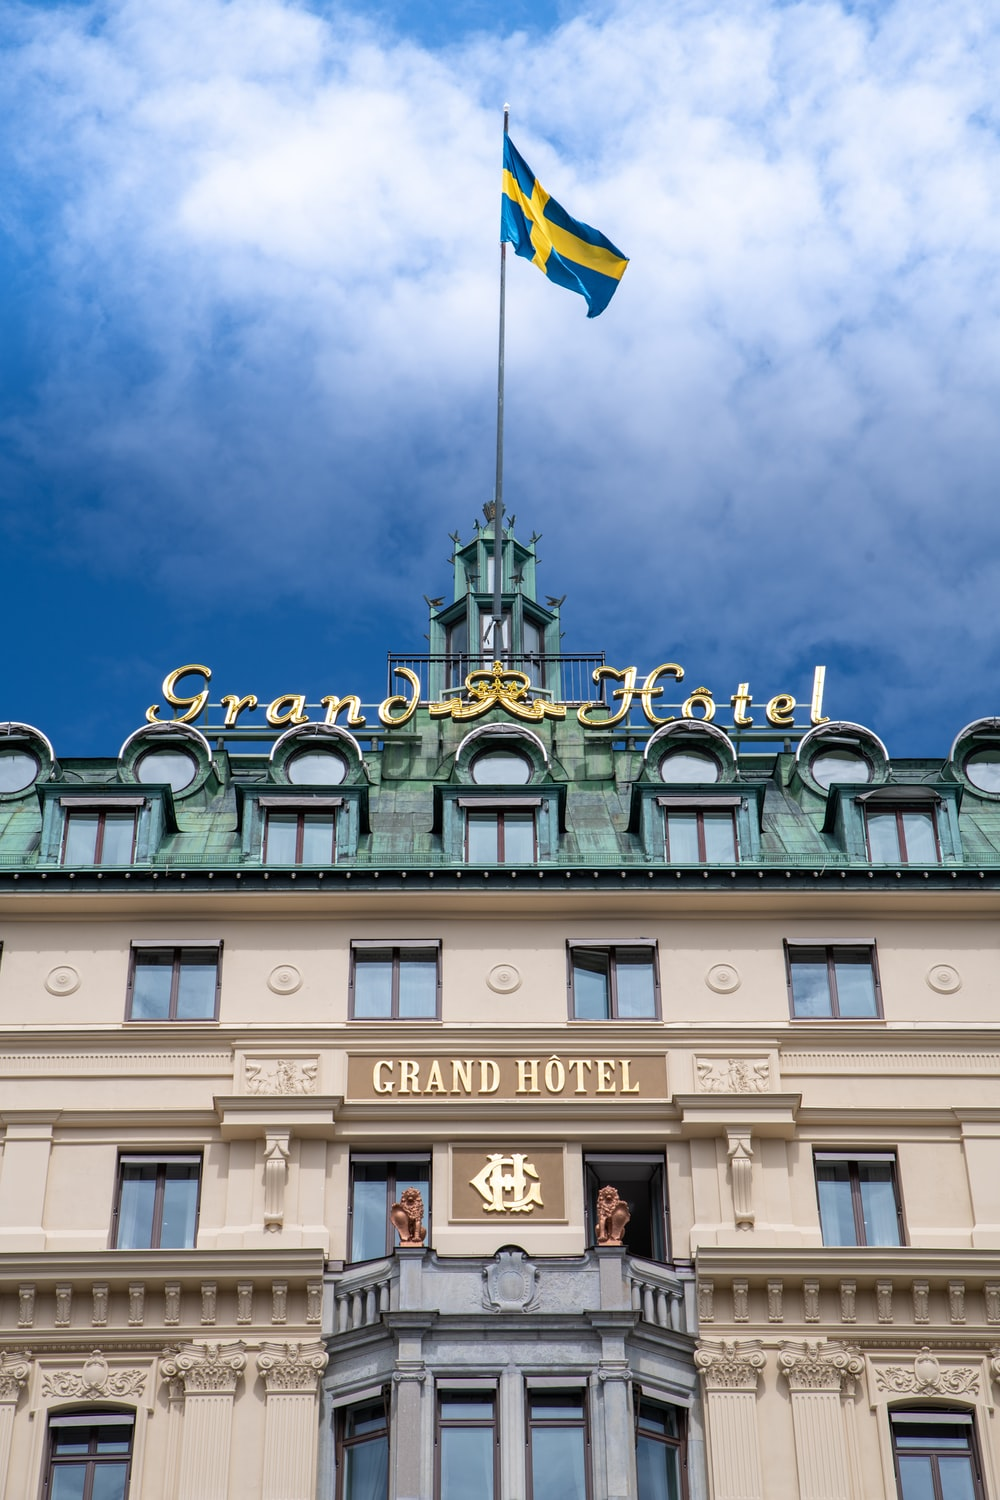 Sweden flag on top of pole on the roof of Grand Hotel building during day